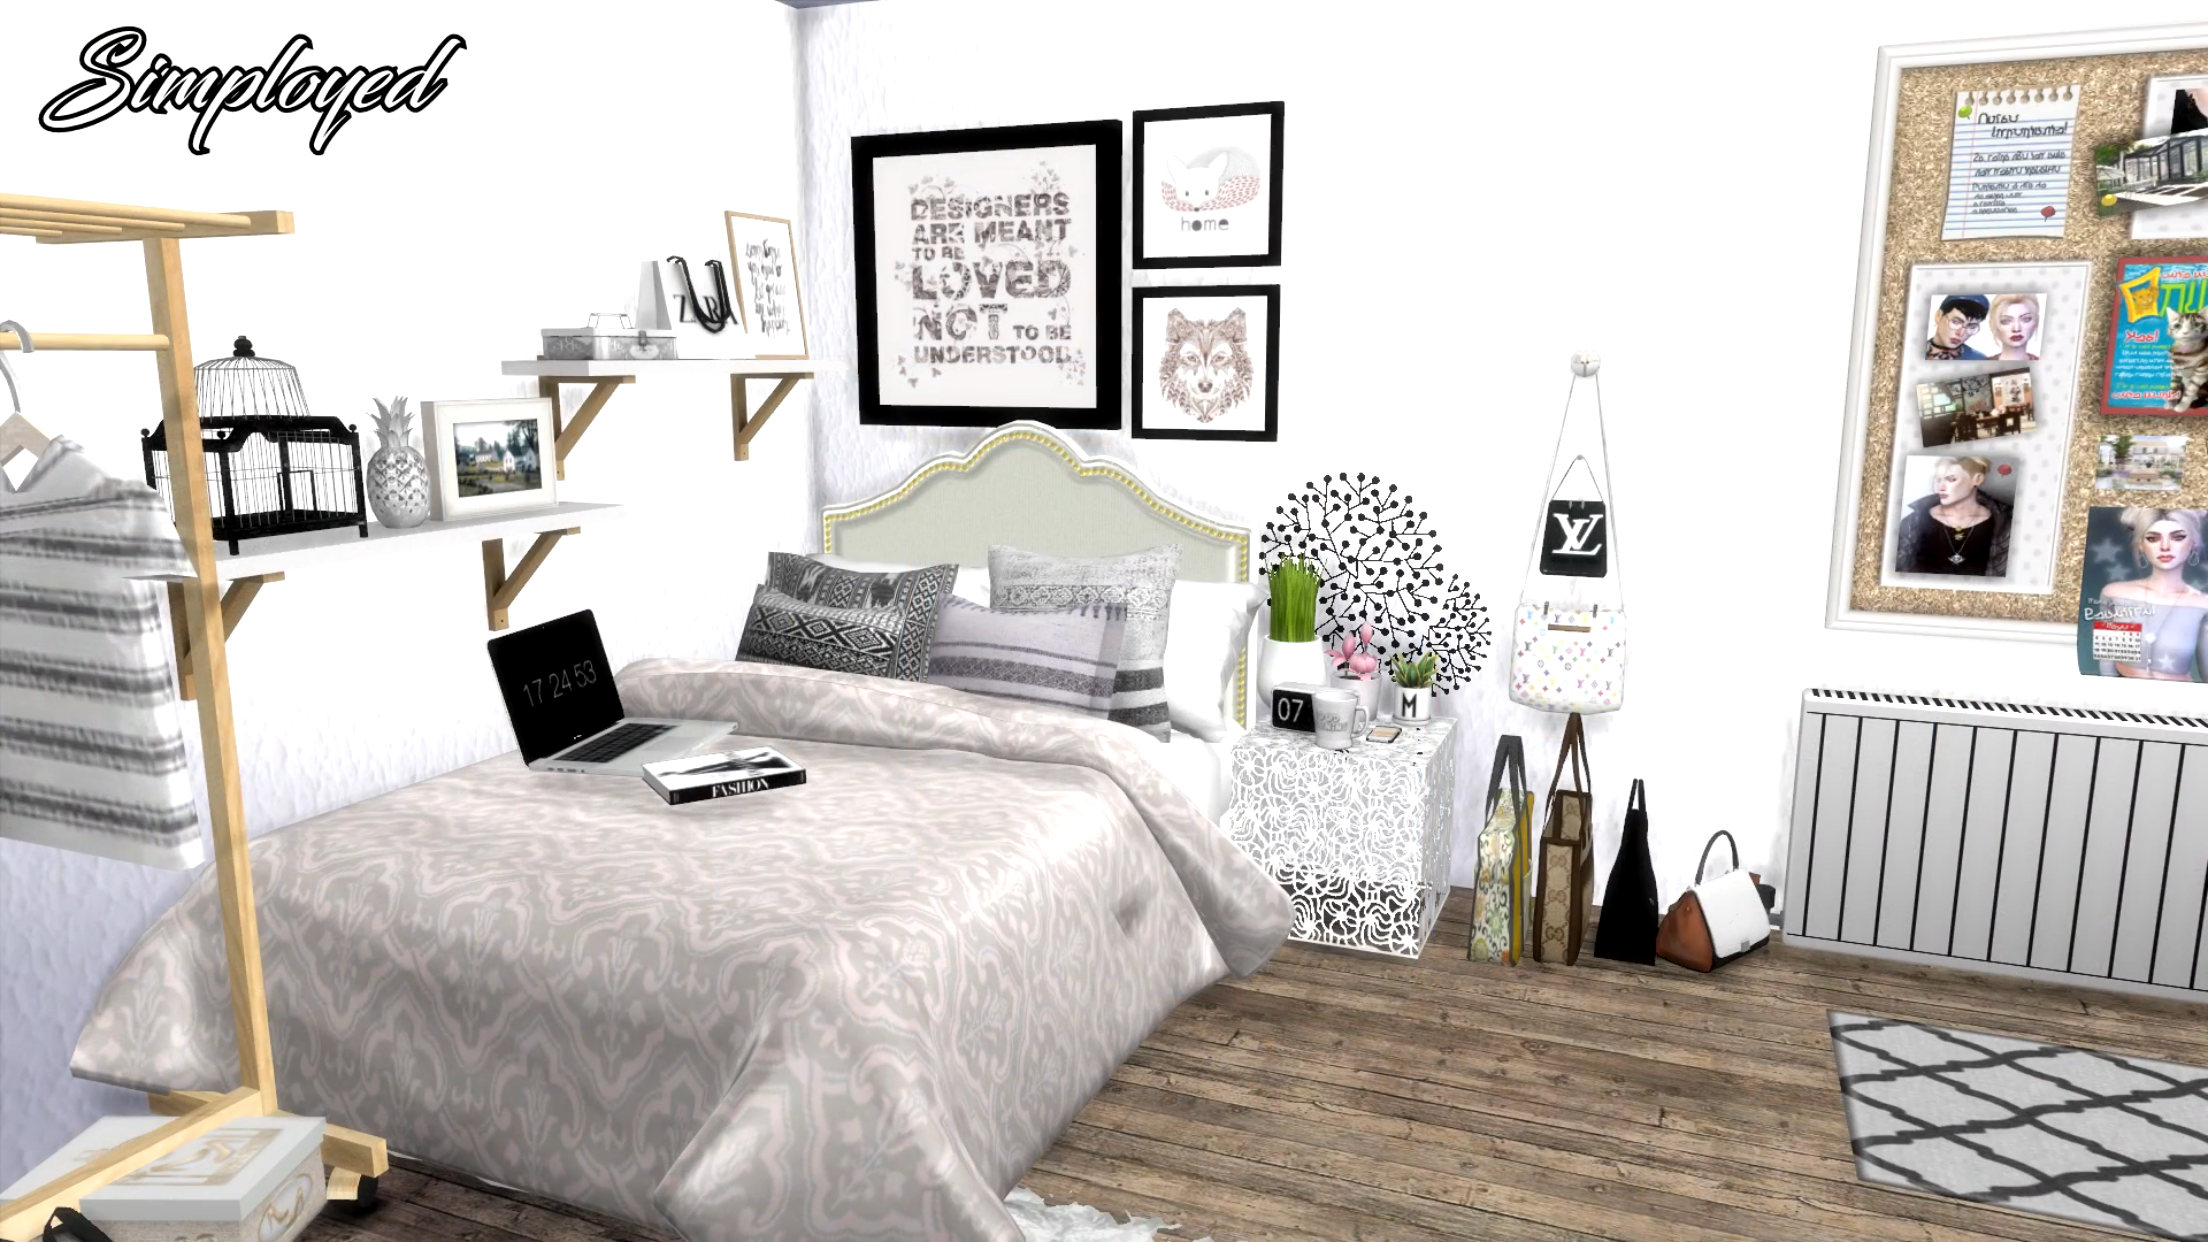 Pin by Cat Little on Sims 4 cc Pinterest